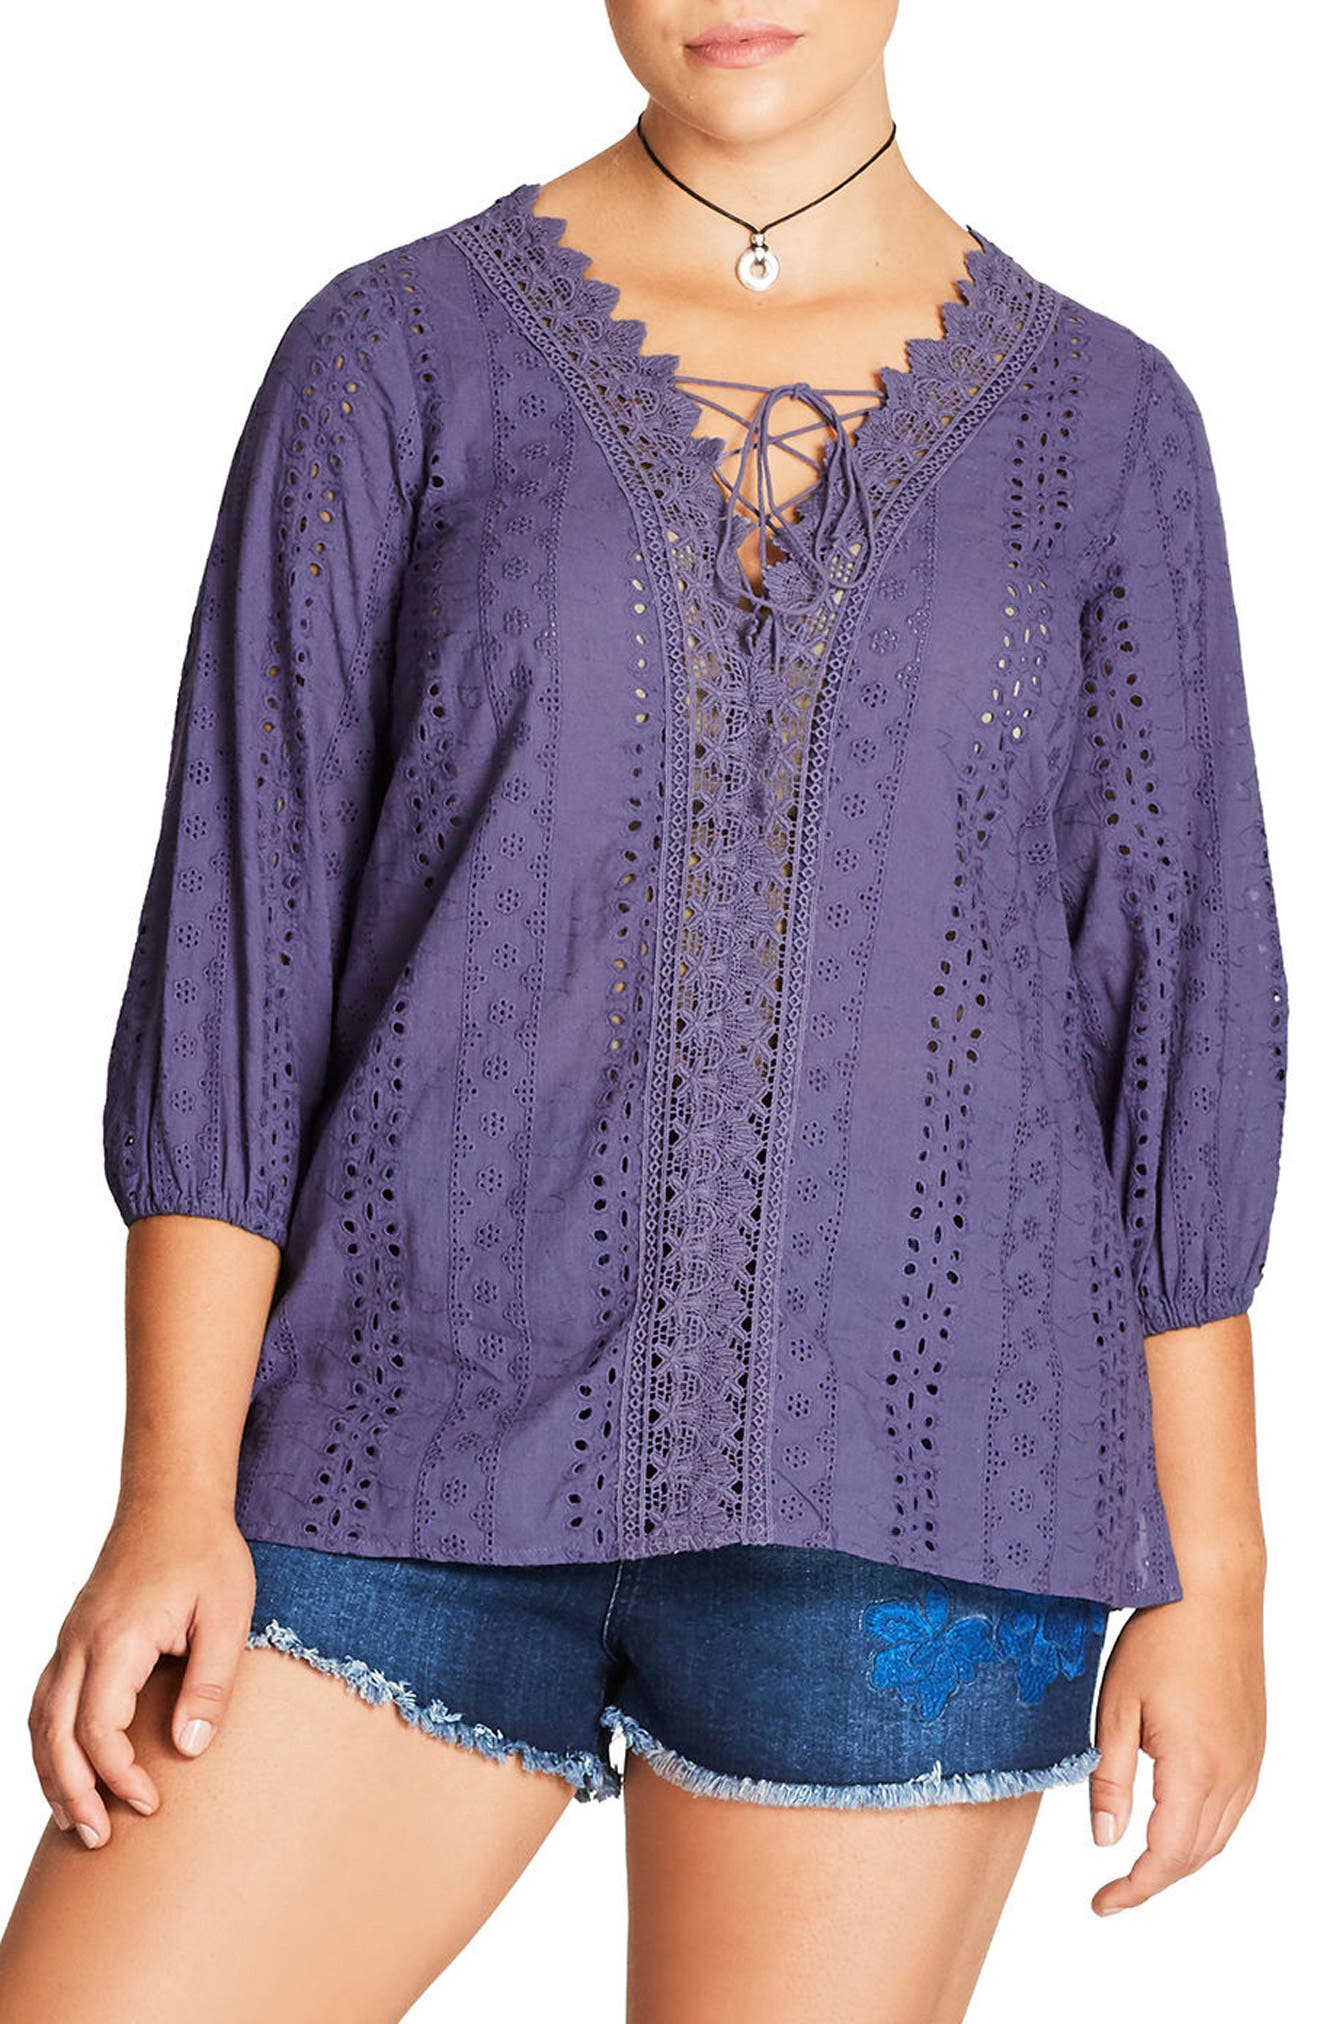 Kiss Me Quick Top,                         Main,                         color, Indigo